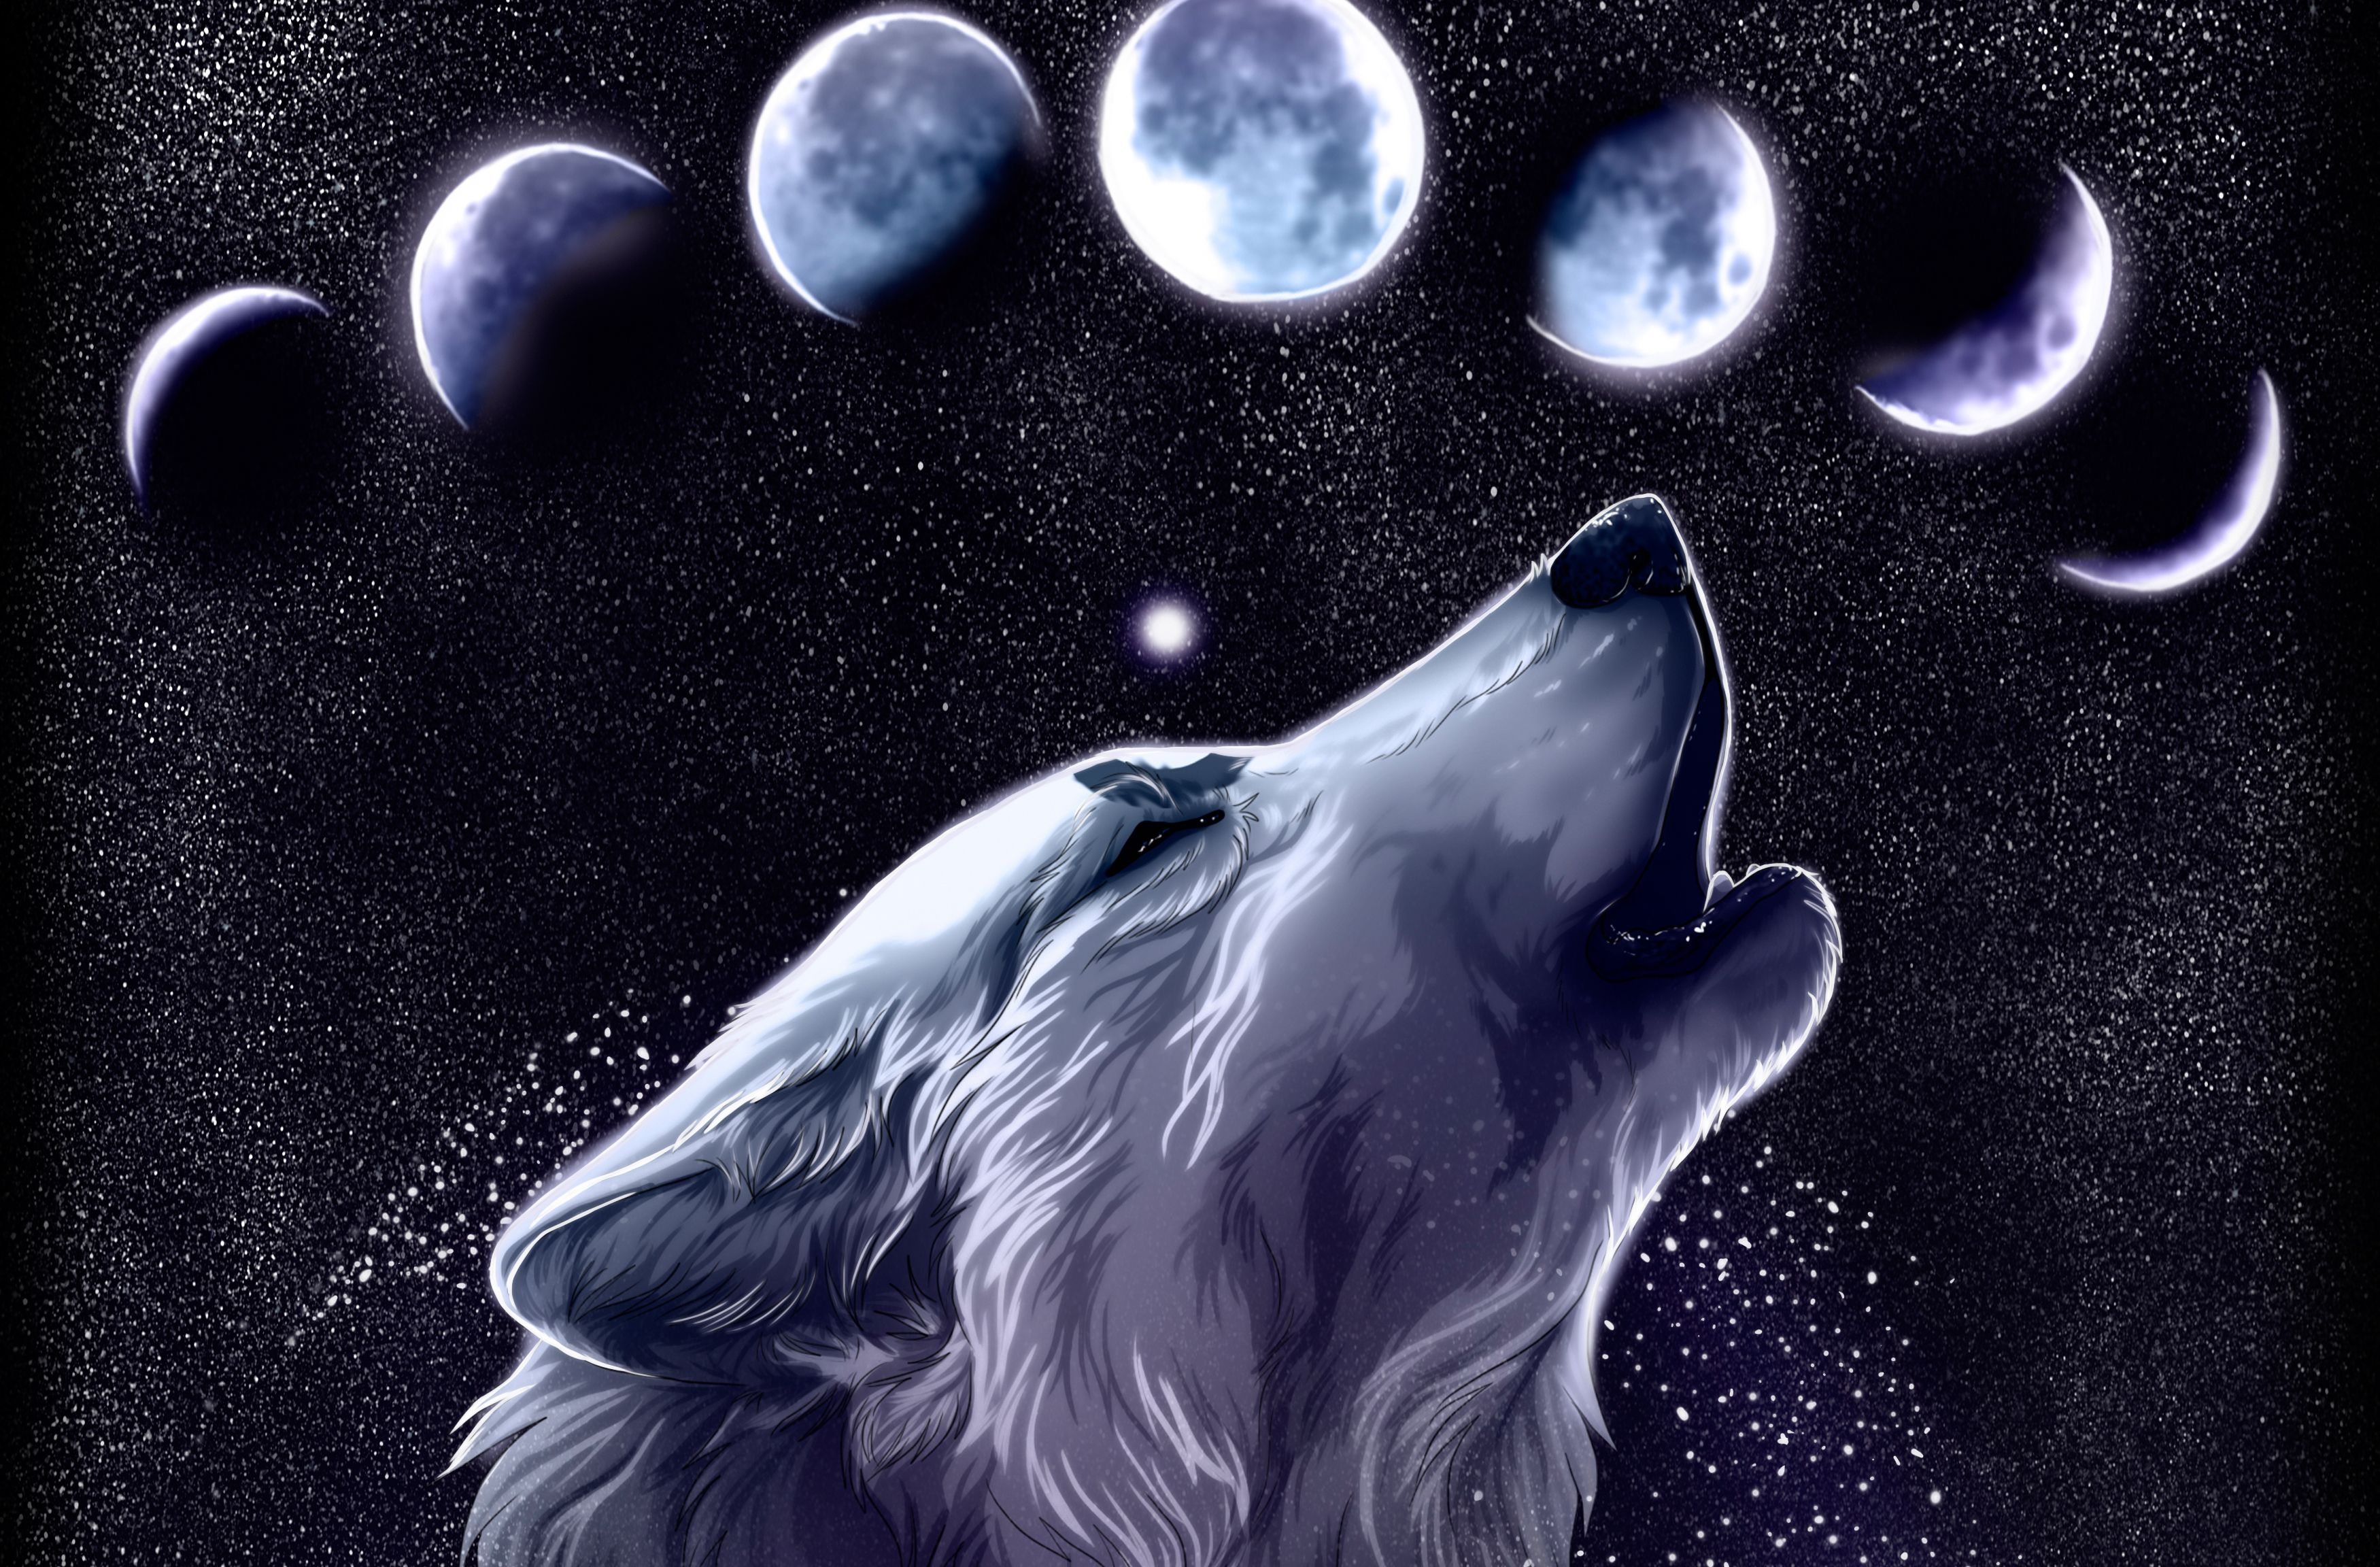 Anime Galaxy Wolf Wallpapers Top Free Anime Galaxy Wolf Backgrounds Wallpaperaccess